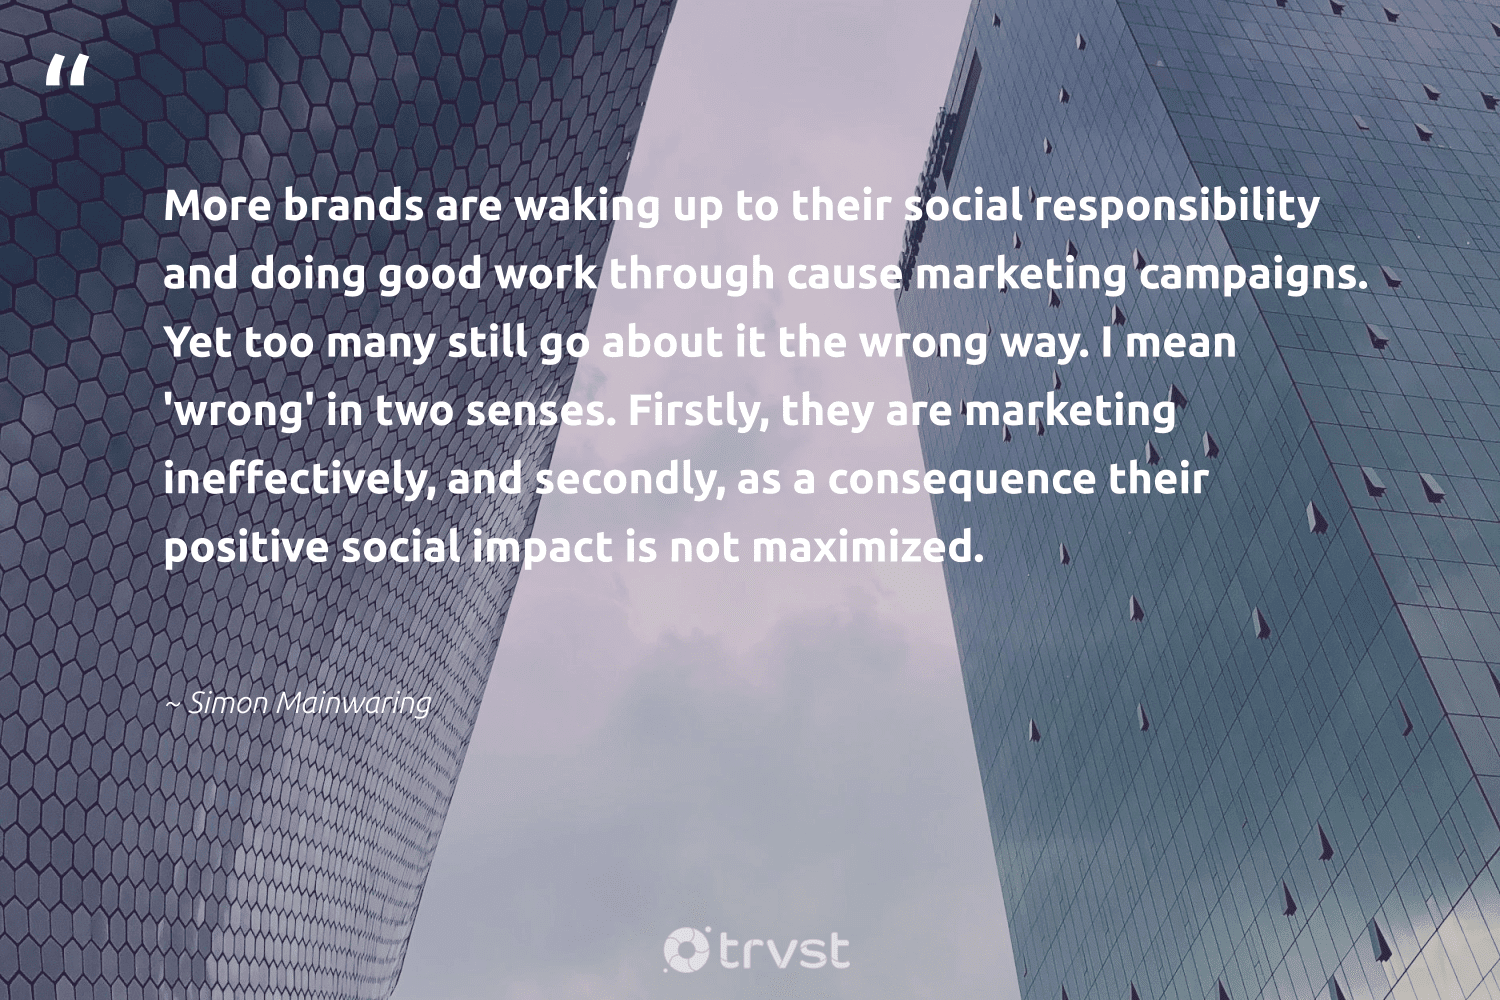 """""""More brands are waking up to their social responsibility and doing good work through cause marketing campaigns. Yet too many still go about it the wrong way. I mean 'wrong' in two senses. Firstly, they are marketing ineffectively, and secondly, as a consequence their positive social impact is not maximized.""""  - Simon Mainwaring #trvst #quotes #impact #socialimpact #cause #marketing #socialenterprise #sustainable #ethicalbusiness #bethechange #socent #dogood"""